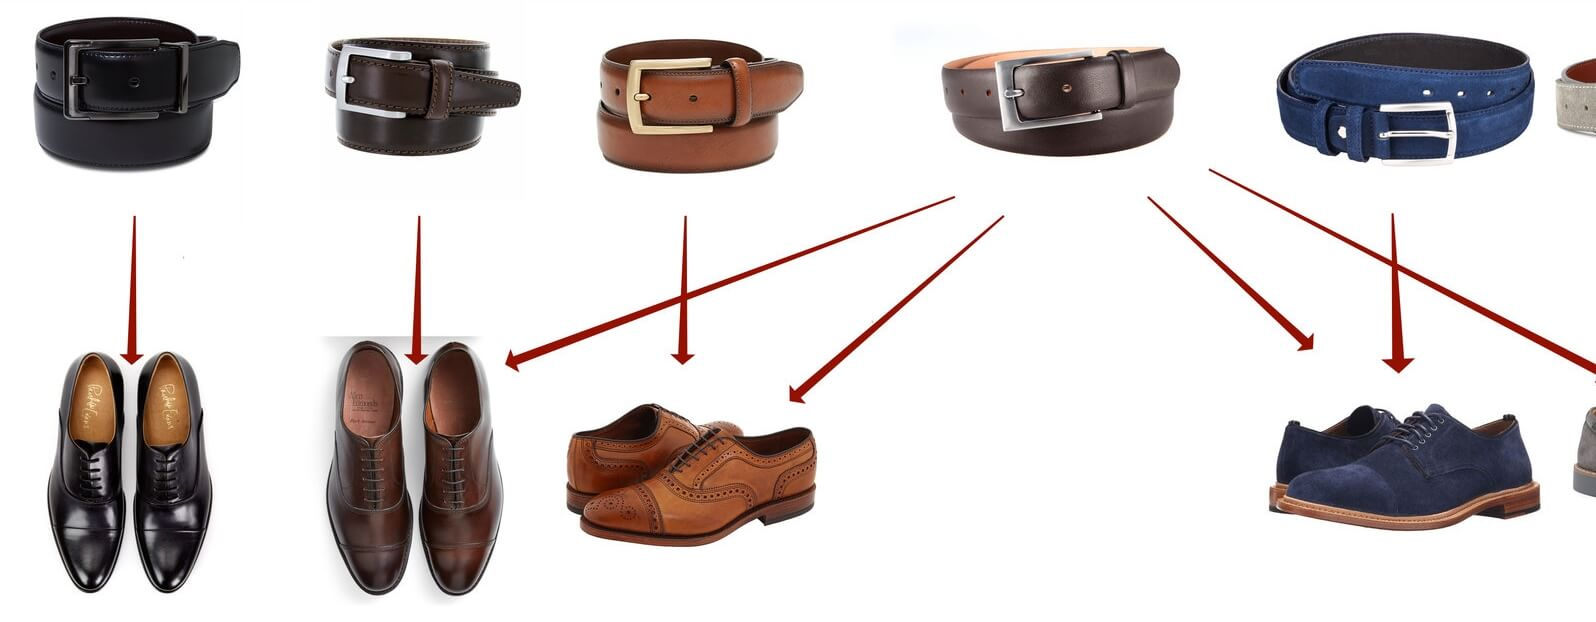 Match Your Belt to Your Shoes